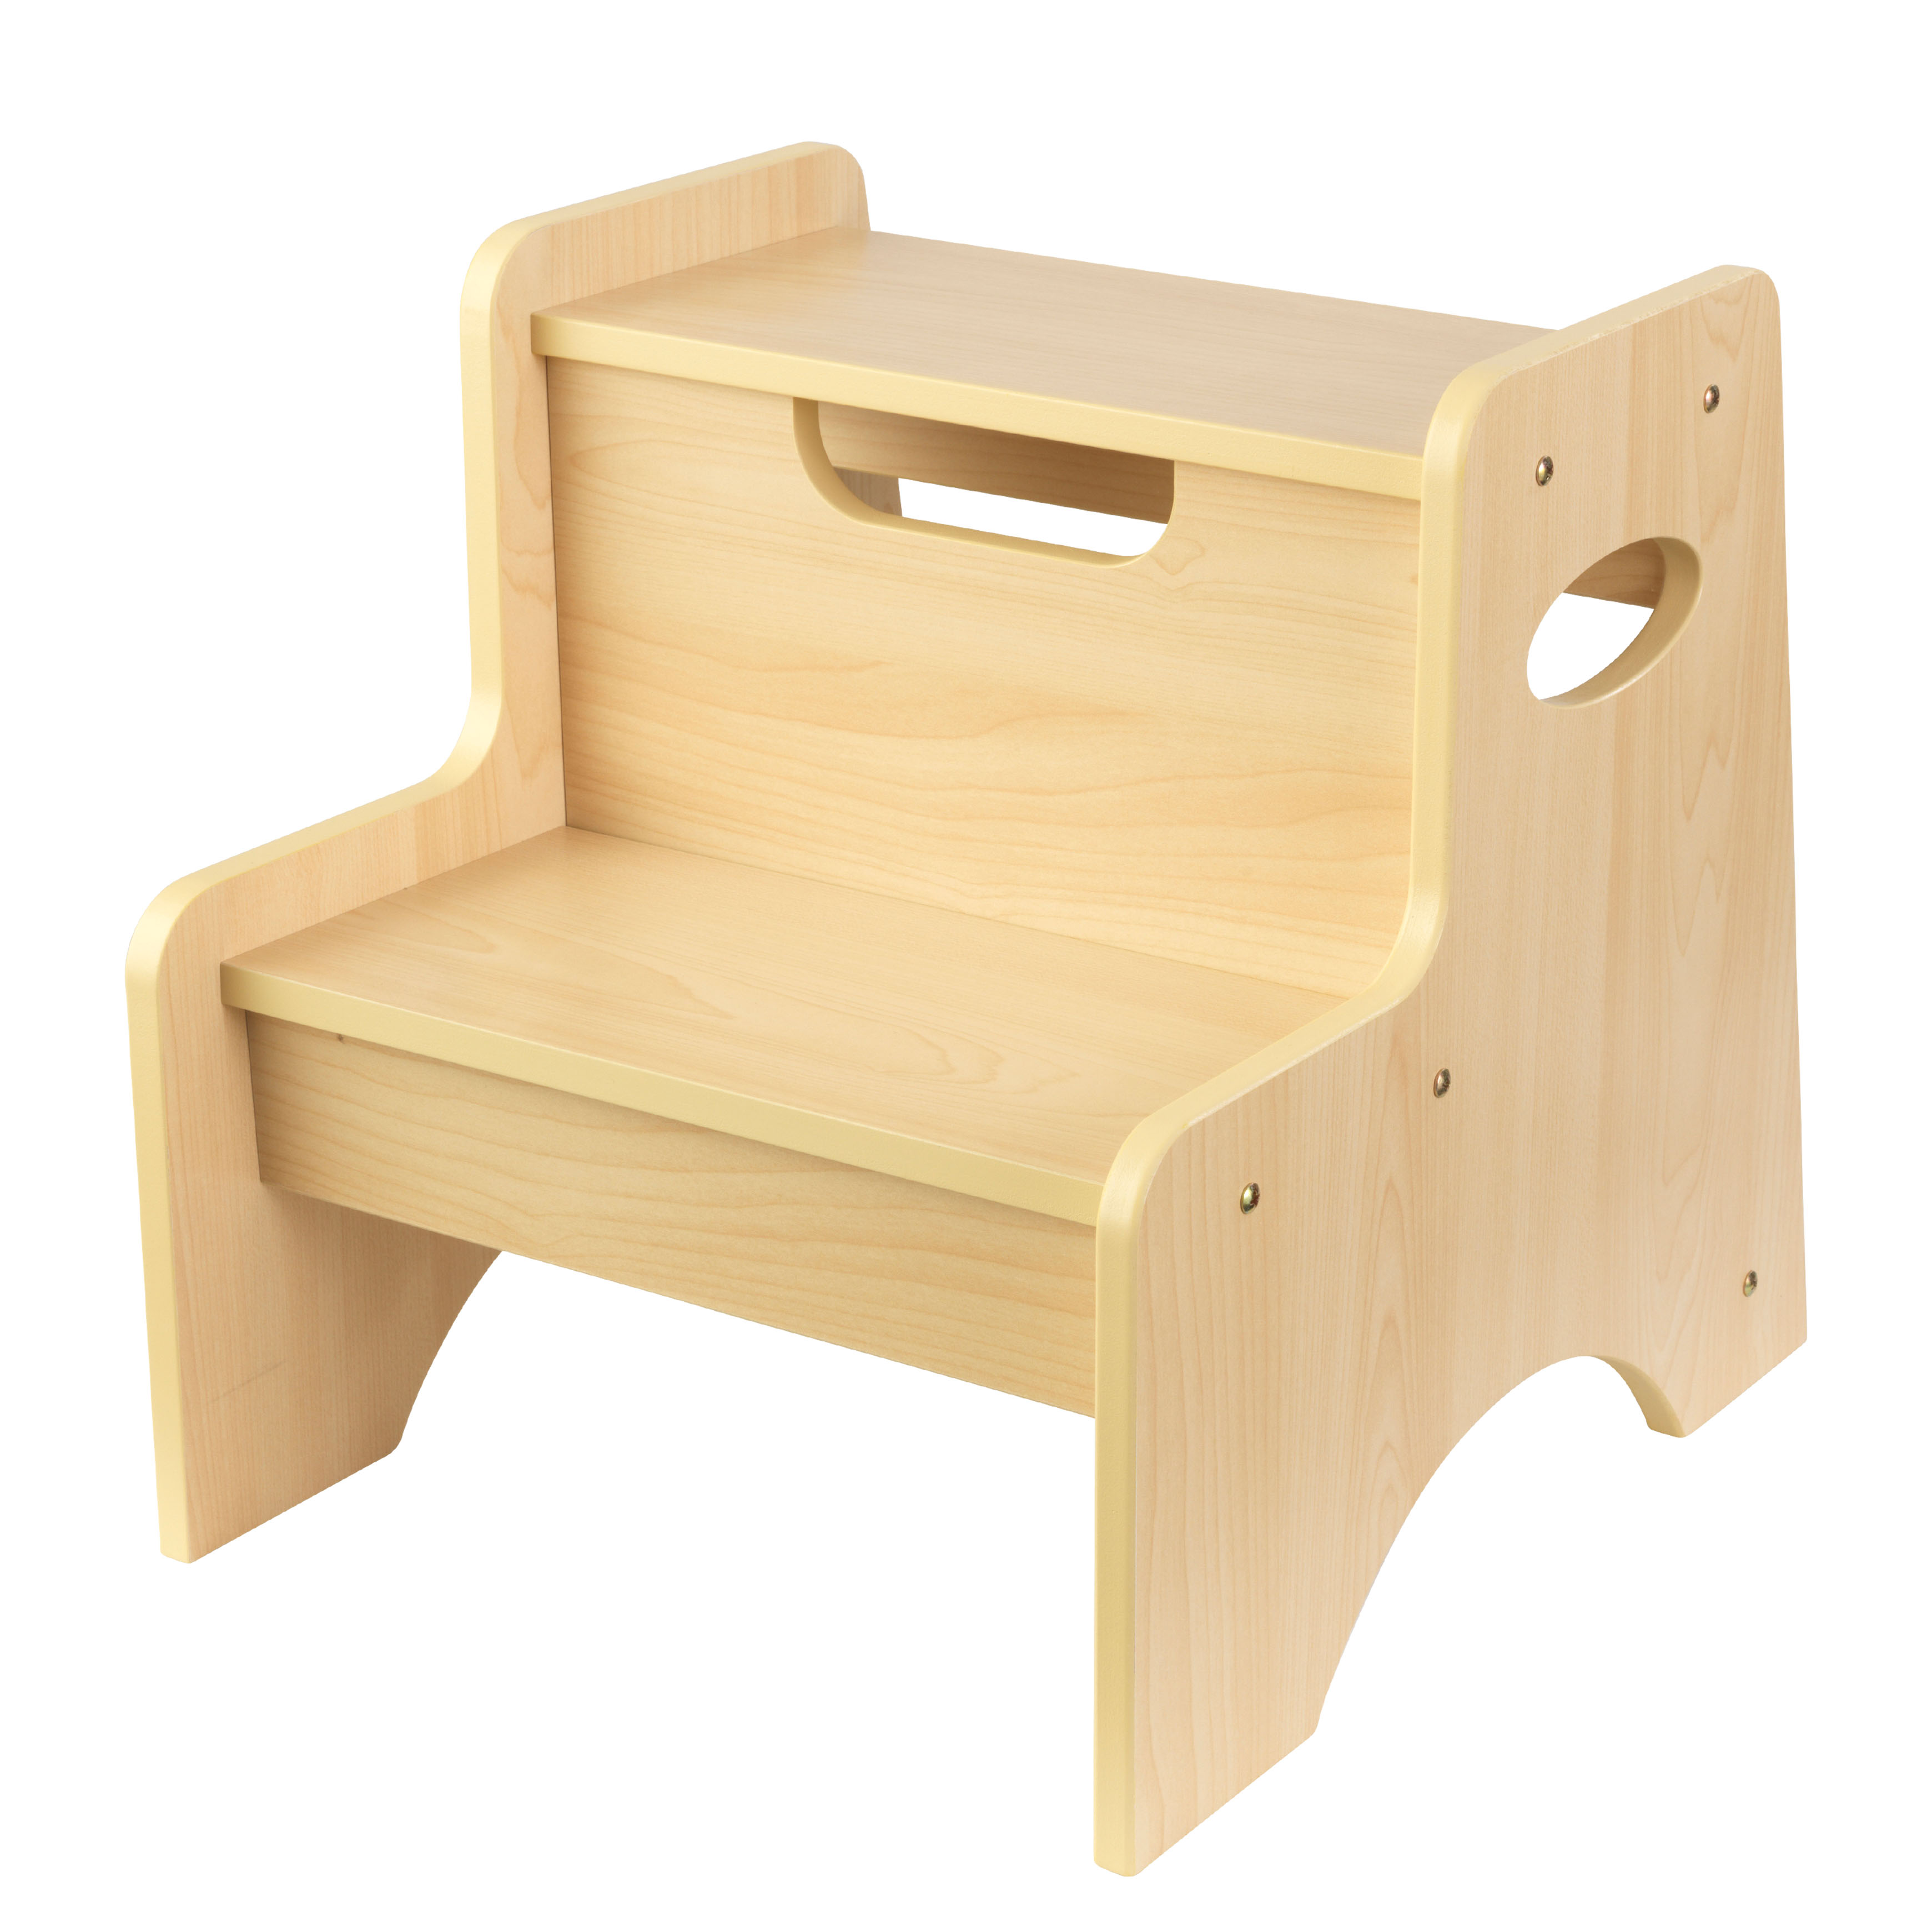 KidKraft Two Step Stool - Natural  sc 1 st  Walmart & Toddler Step Stools islam-shia.org